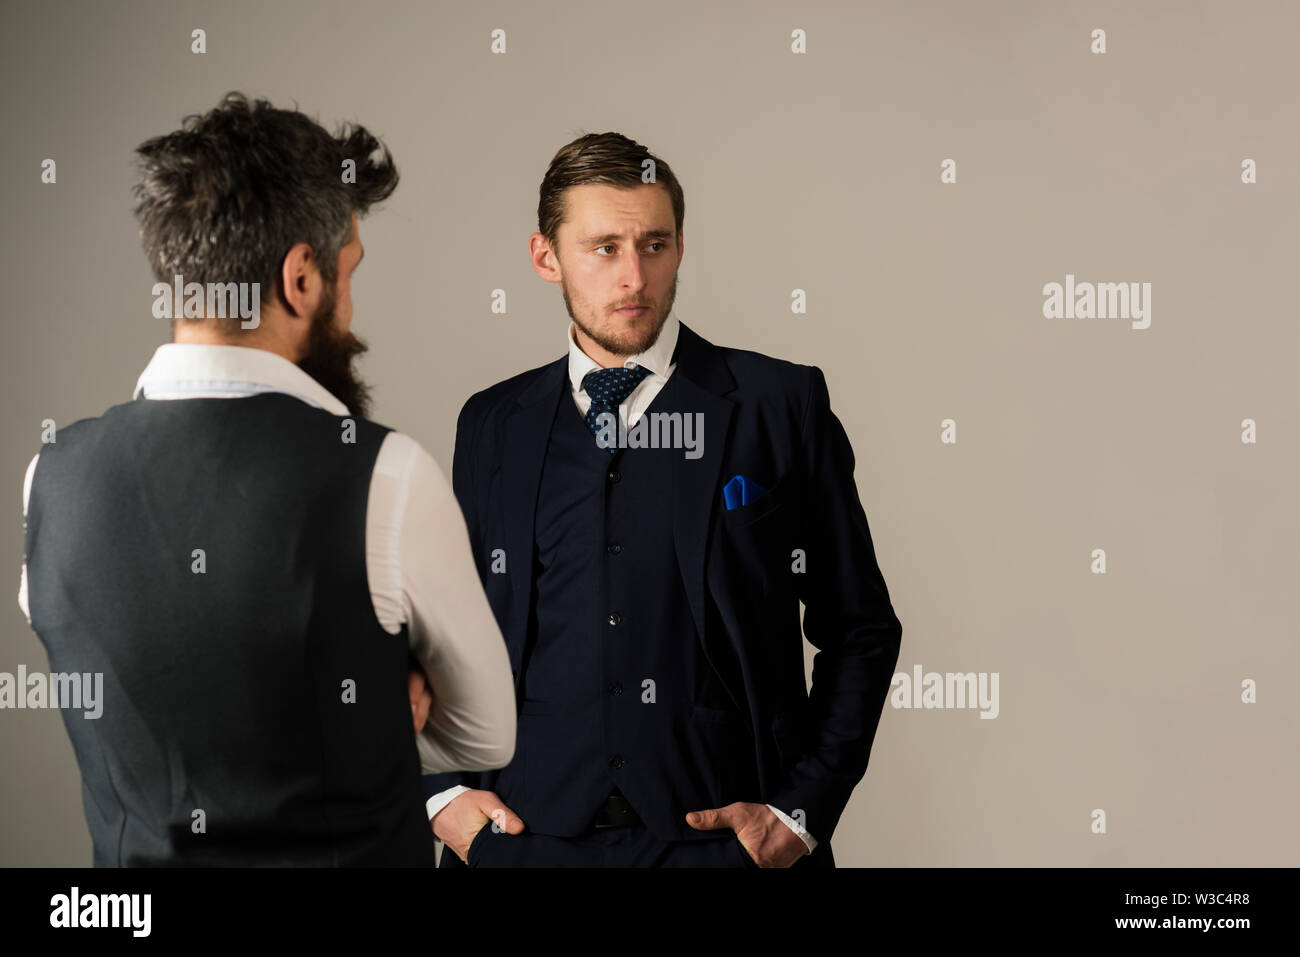 Style and status. Bonds of friendship and cooperation among businessmen. Fashion models in business relations. Men wear fashion business formal style. - Stock Image